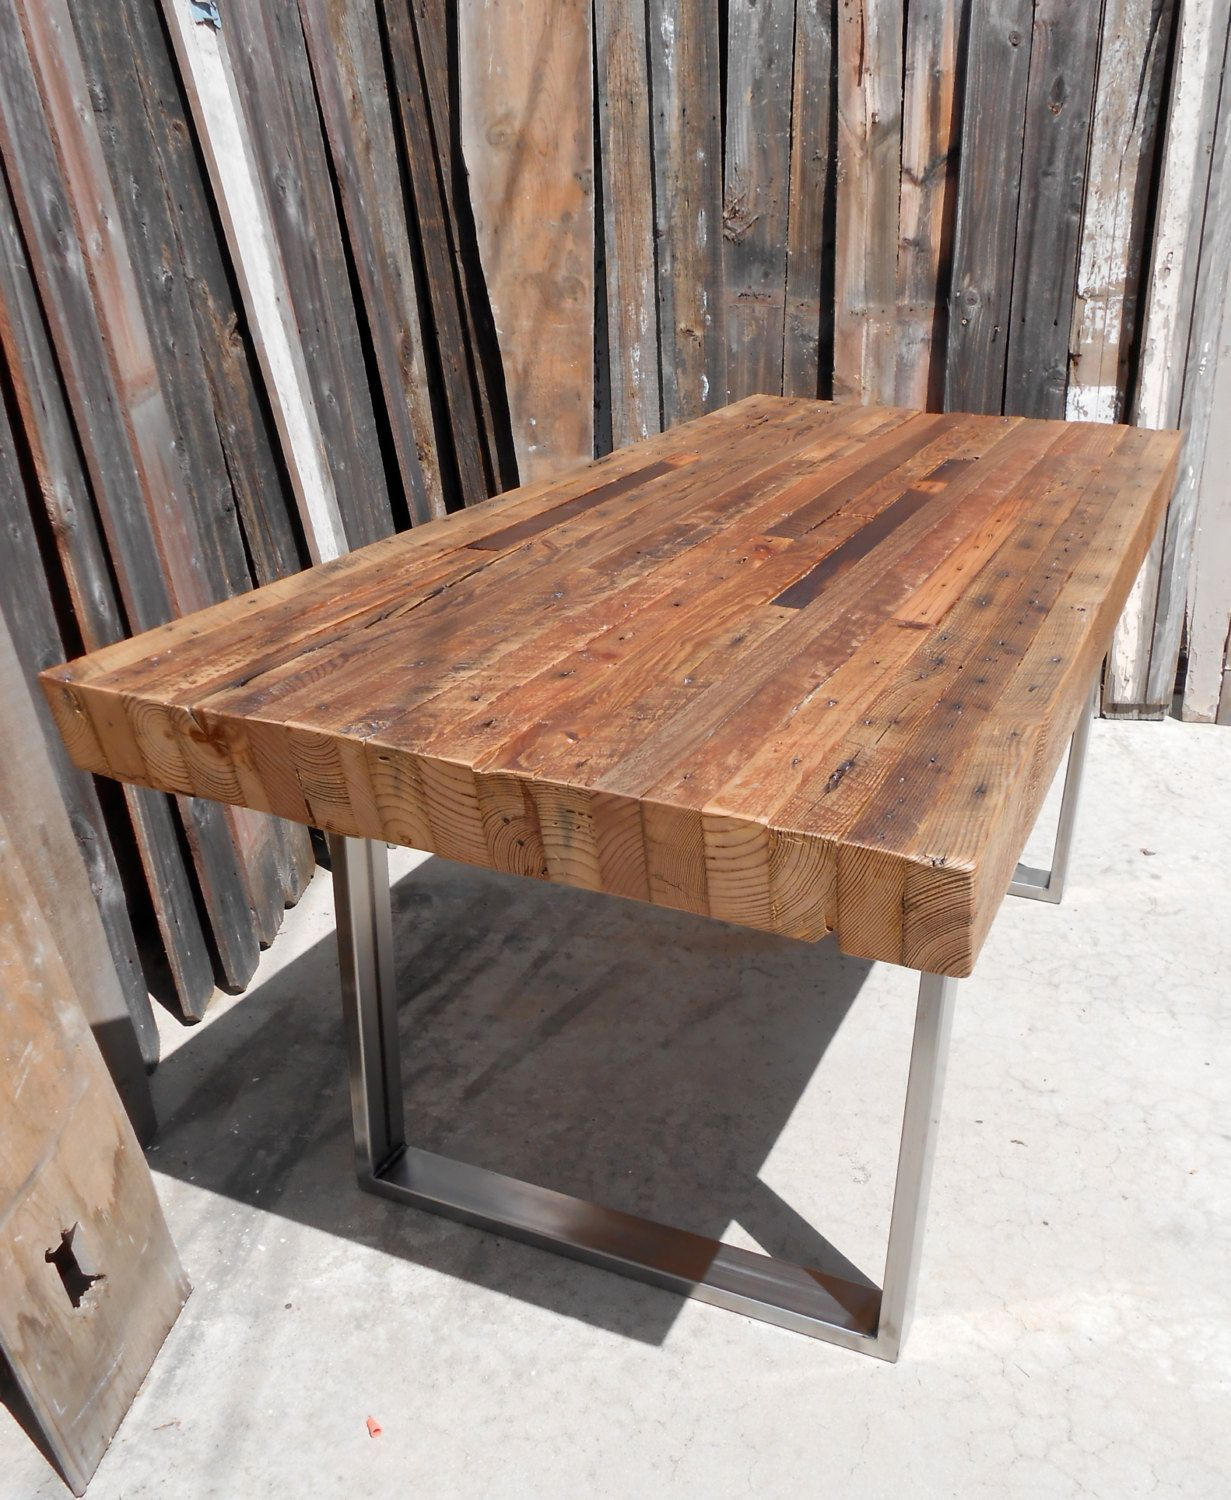 Custom Handmade Rustic Industrial/Modern Reclaimed Wood